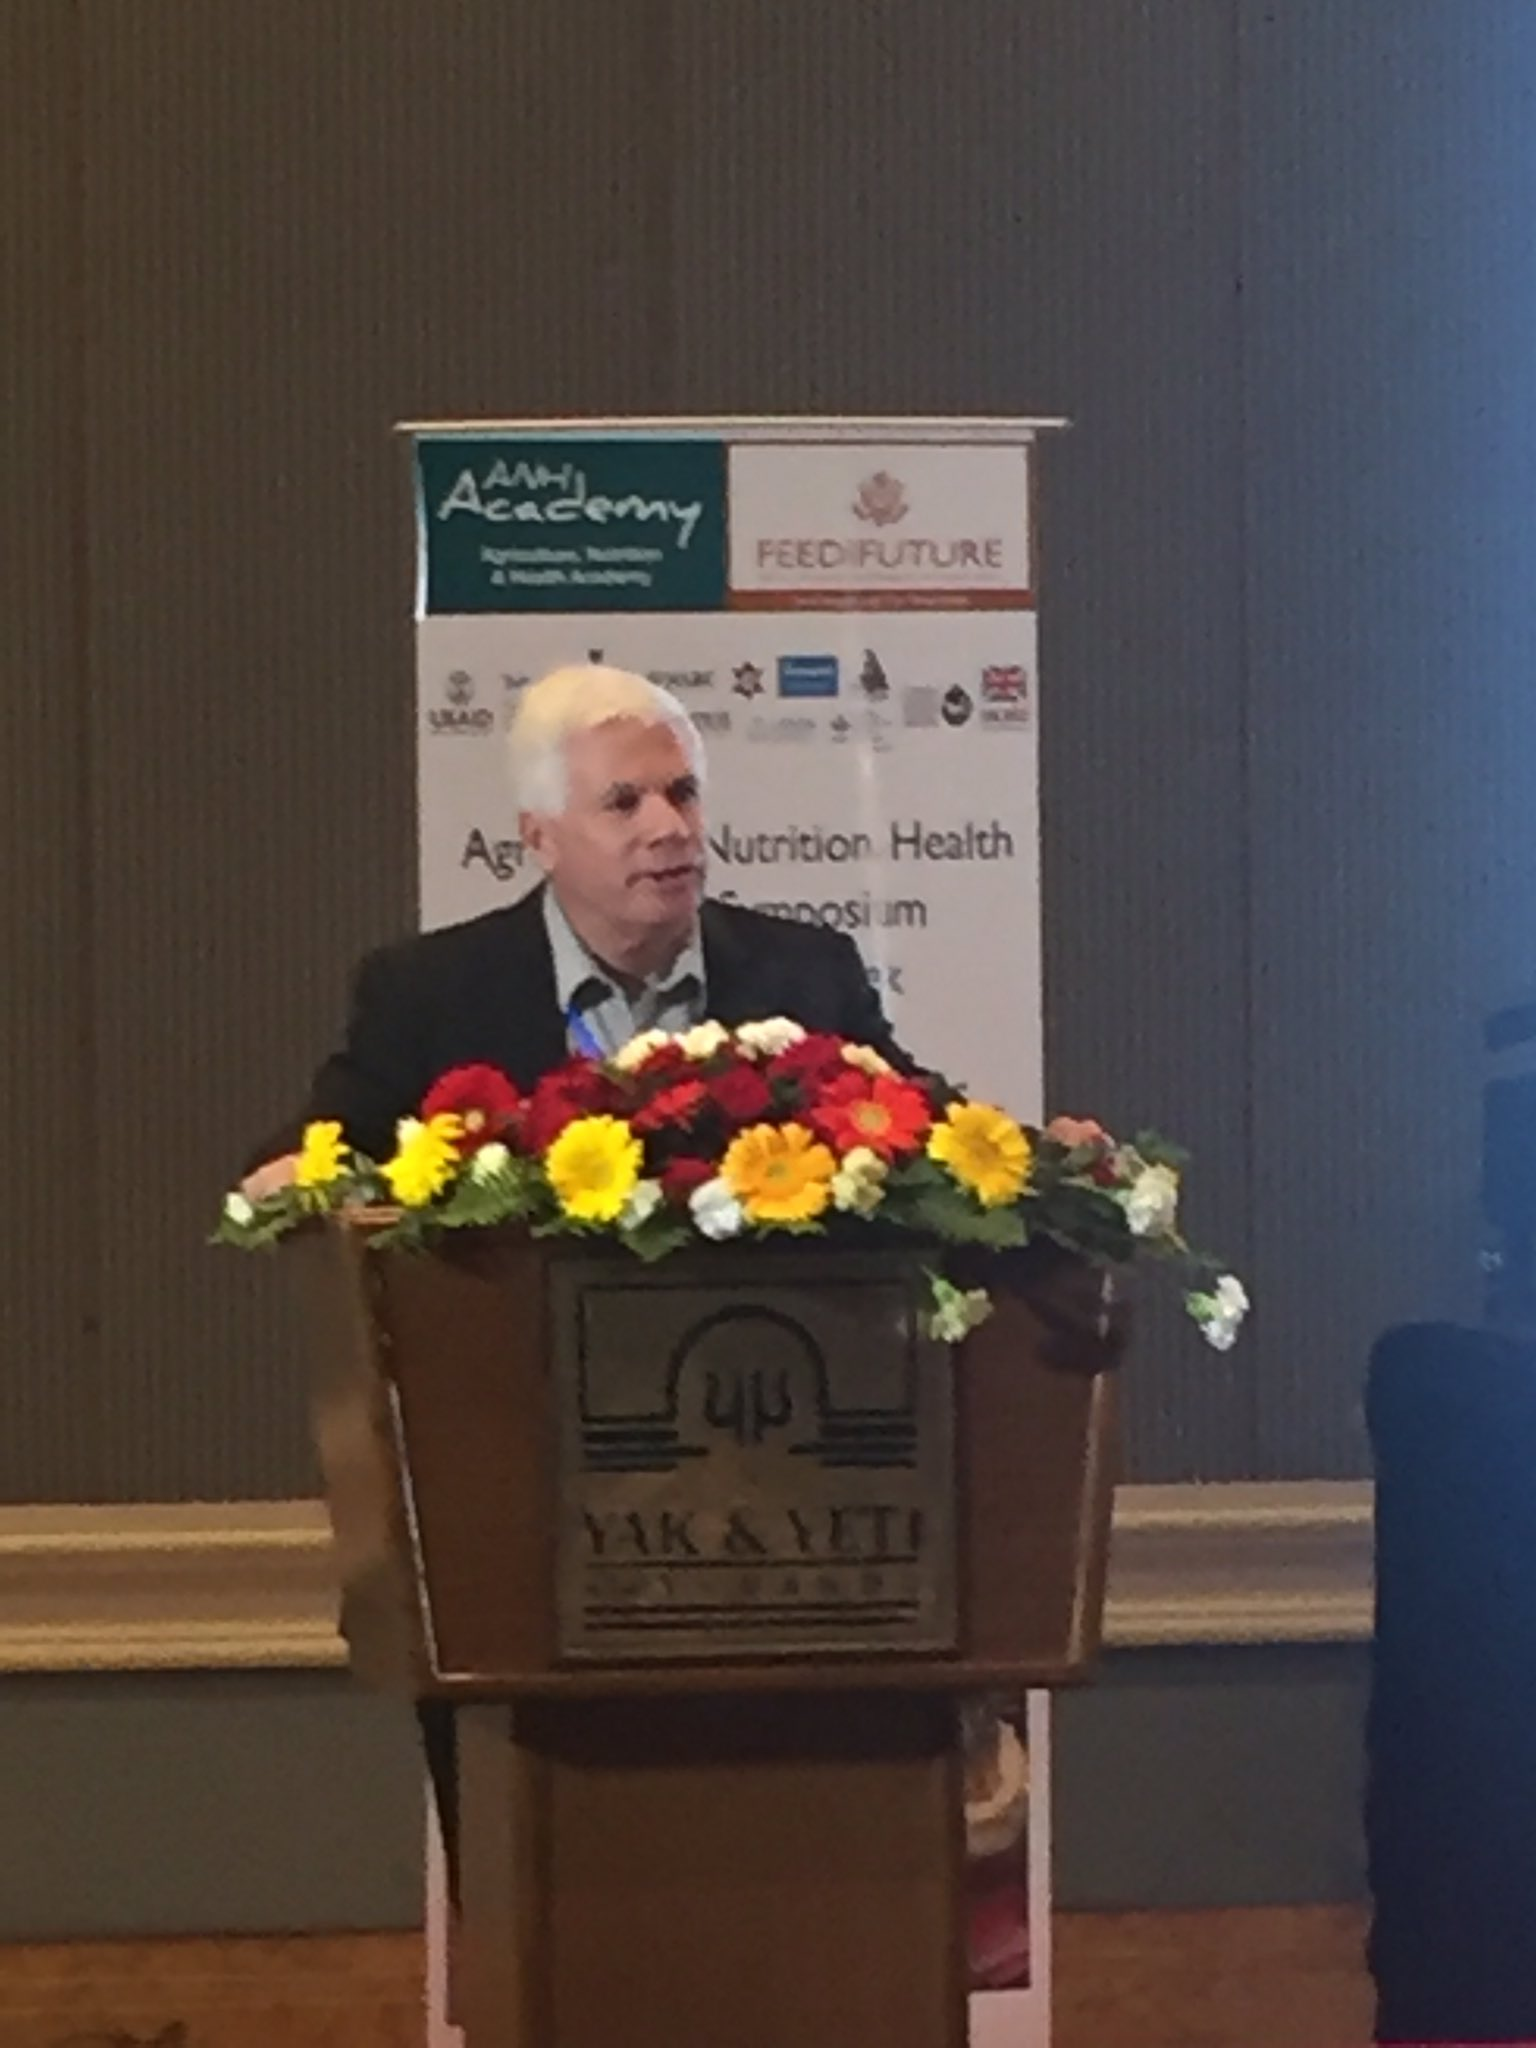 A4NH Director John McDermott delivers welcome at #ANH2017. @IMMANA_res @CGIARnutrition #A4NHResearch #Nepal https://t.co/a31RjHENeL